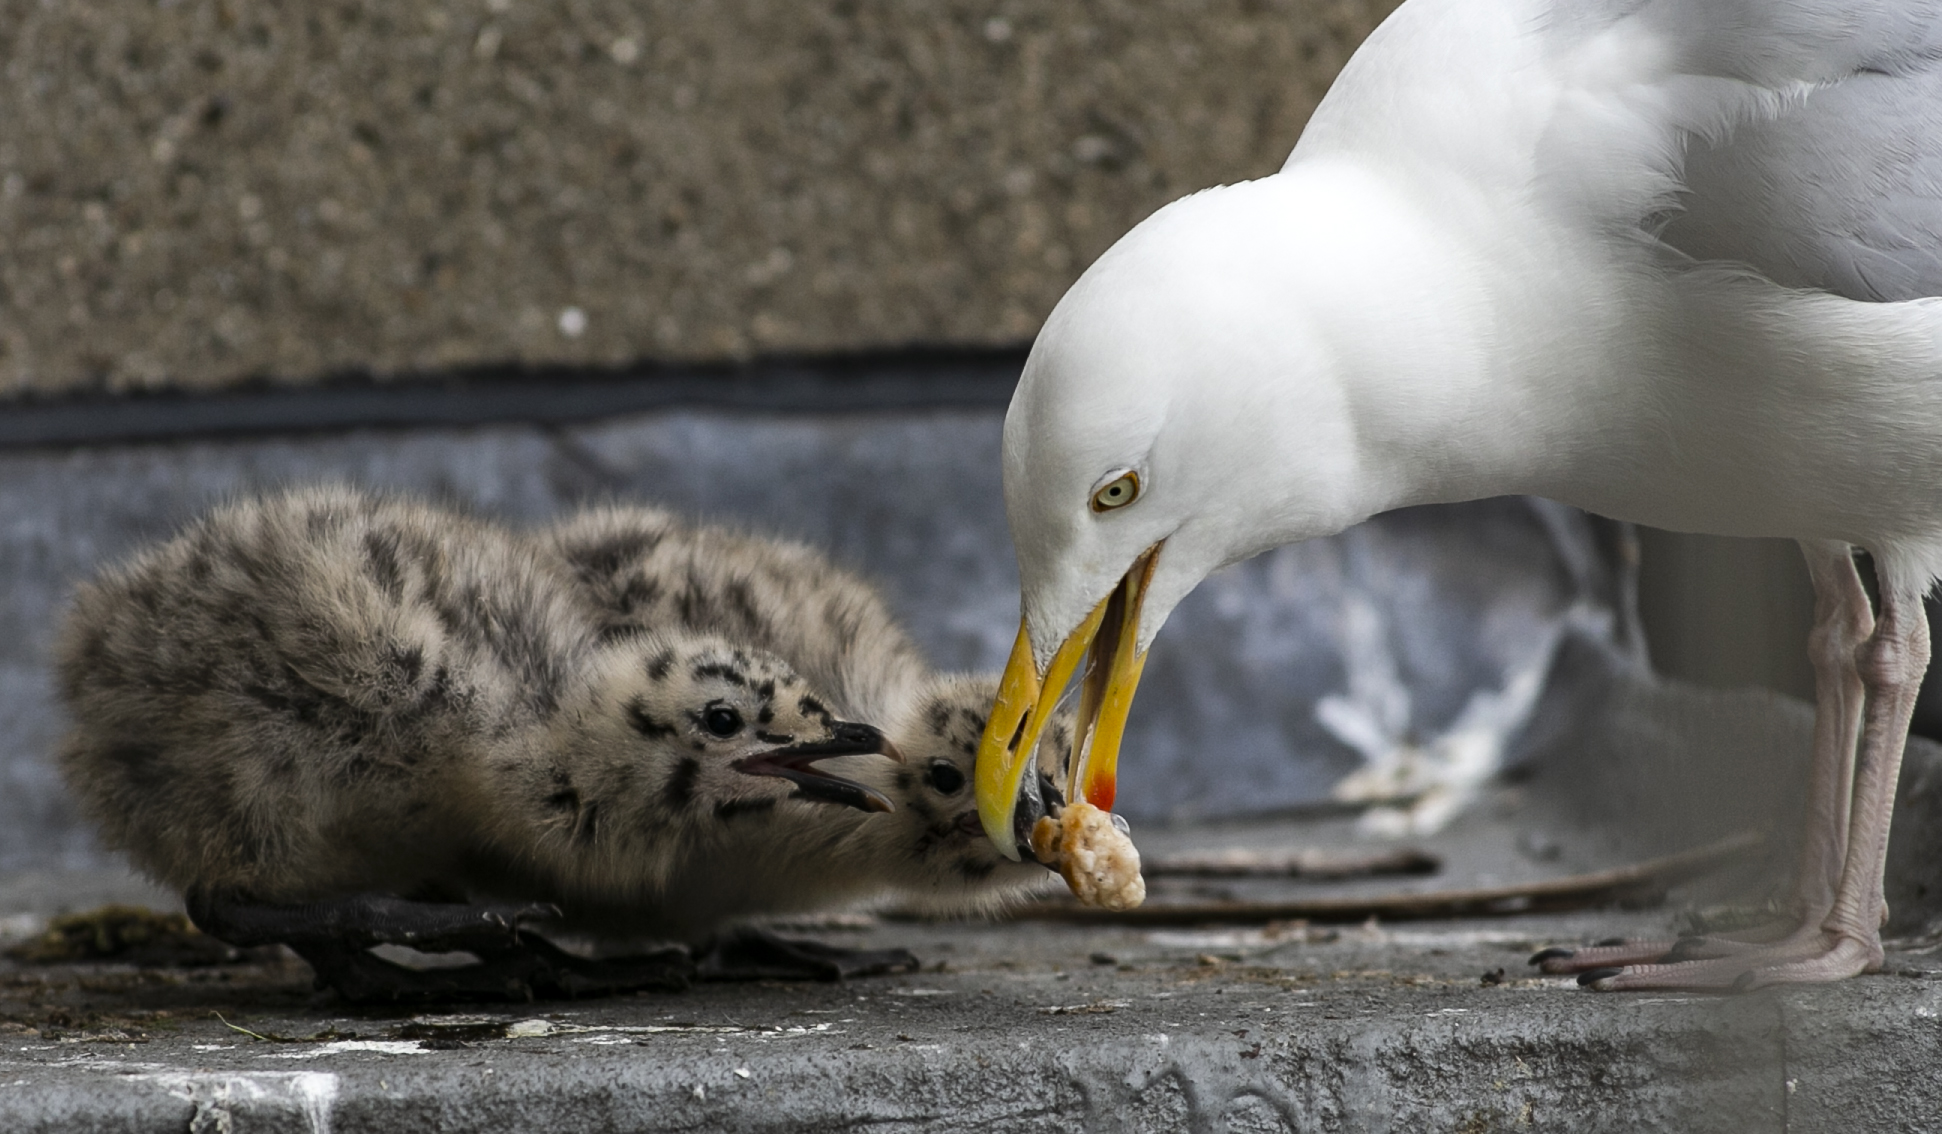 Baby gulls emerge from their nest on the side of a building in Dublin City Centre, 08-06-2021. Image: Sam Boal/RollingNews